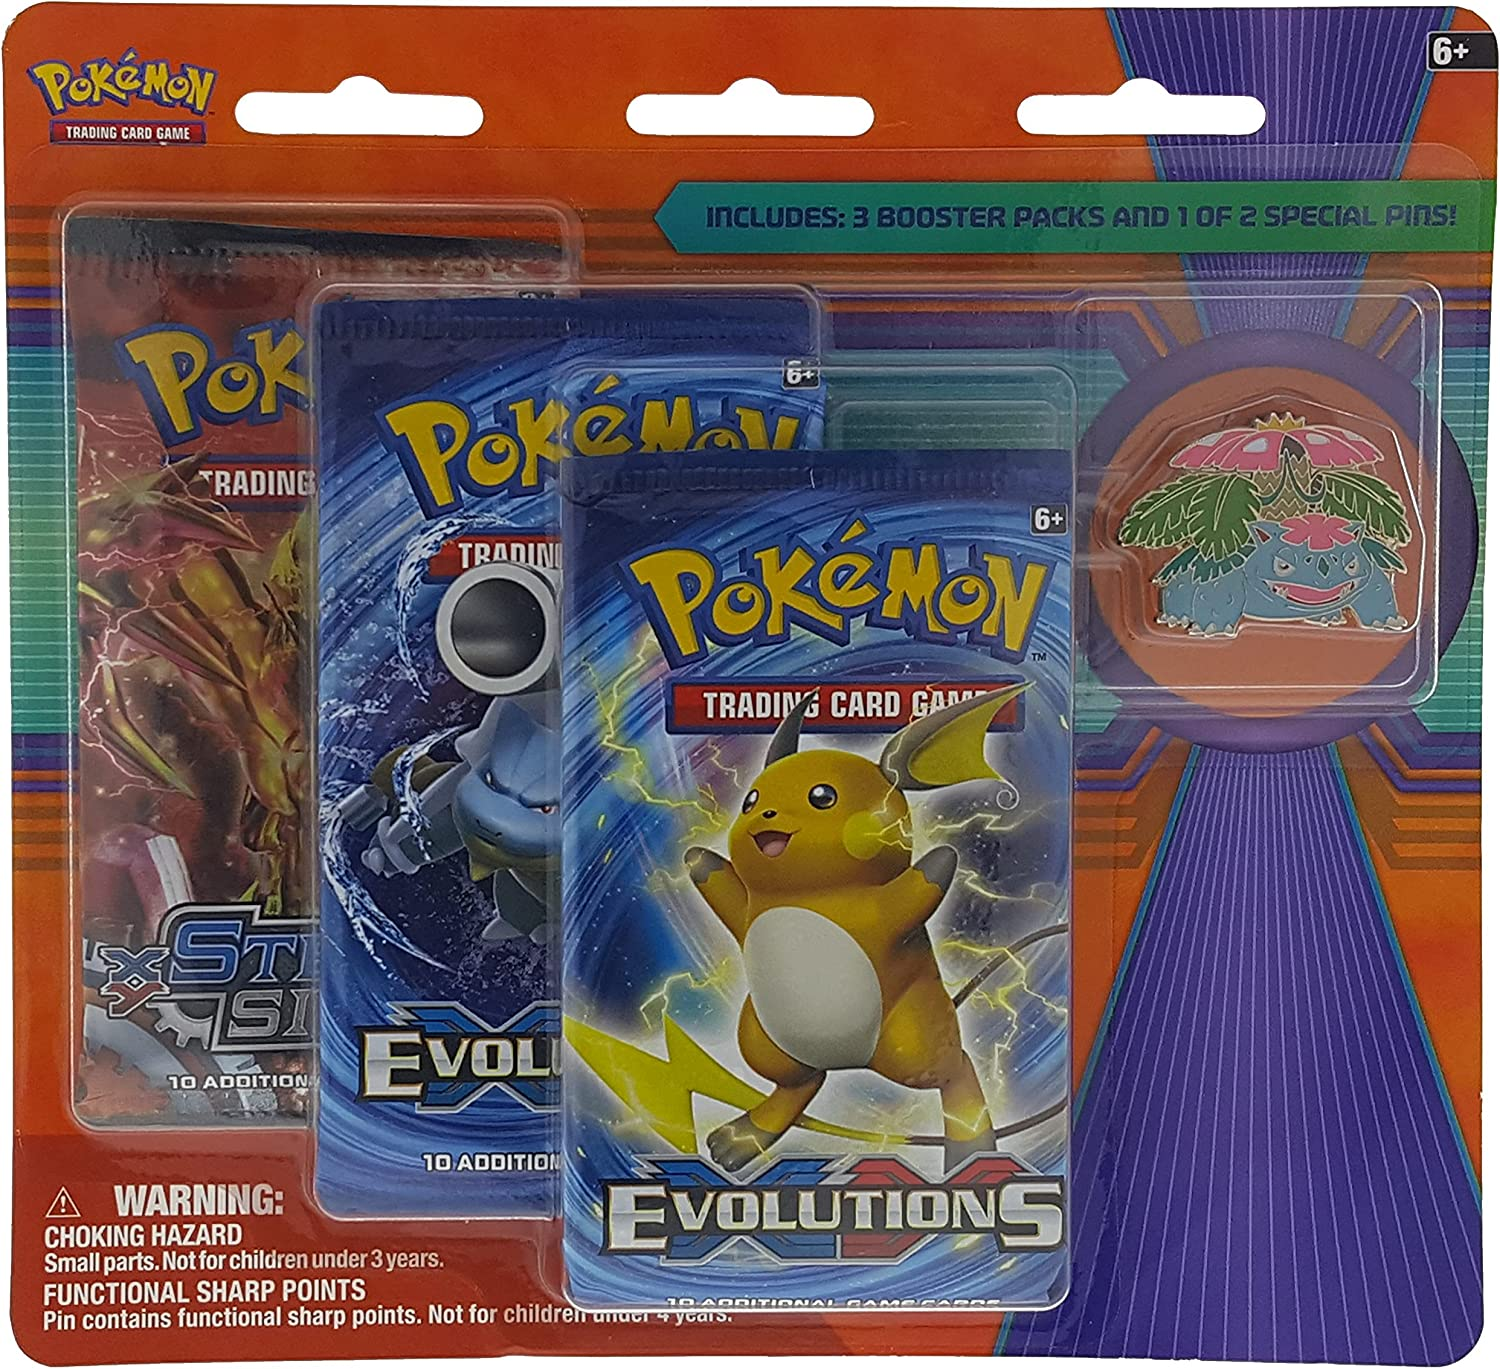 Pokemon TCG, Blister Pack Containing 3 Booster Packs and Featuring Mega Venusaur Collector's Pin